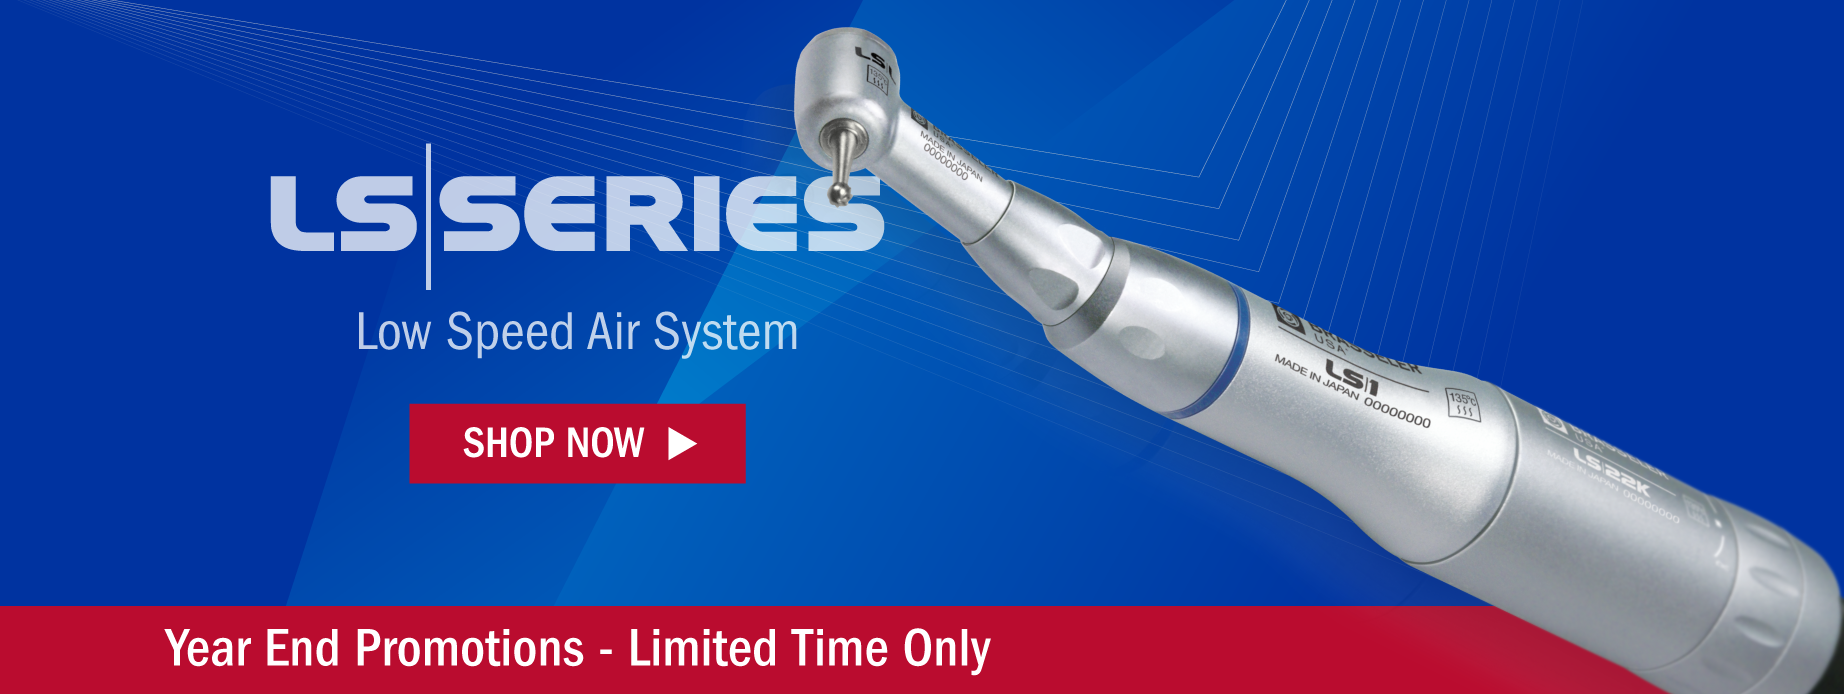 LS Series Low Speed Air System